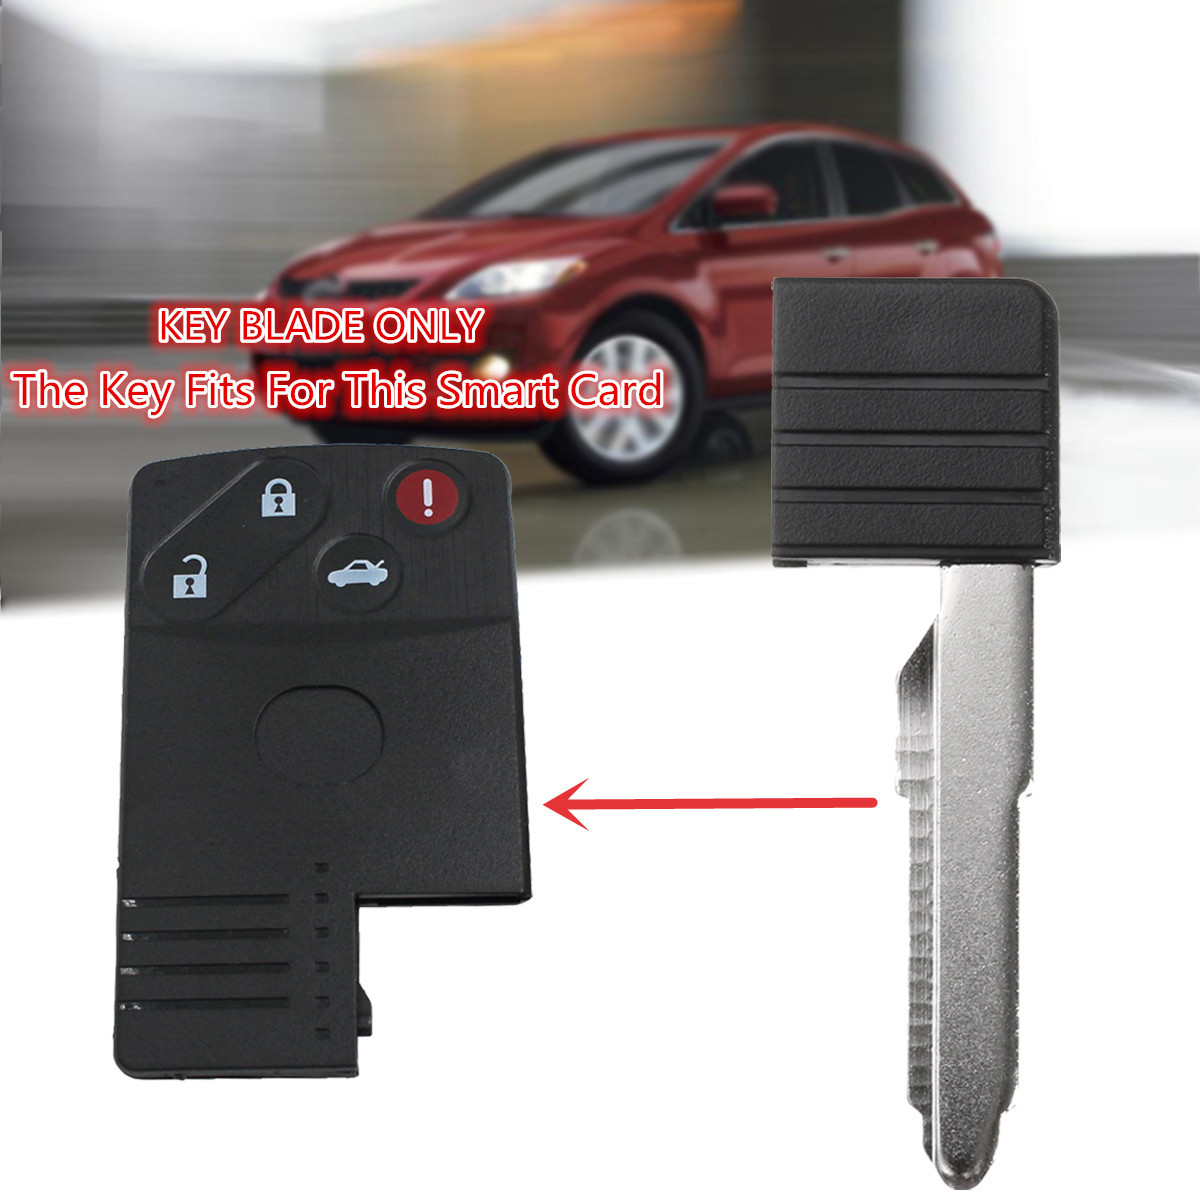 Car Replacement Uncut Insert Emergency Key Blade Blank For Mazda Smart Card Key CX-7 CX-9 RX-8